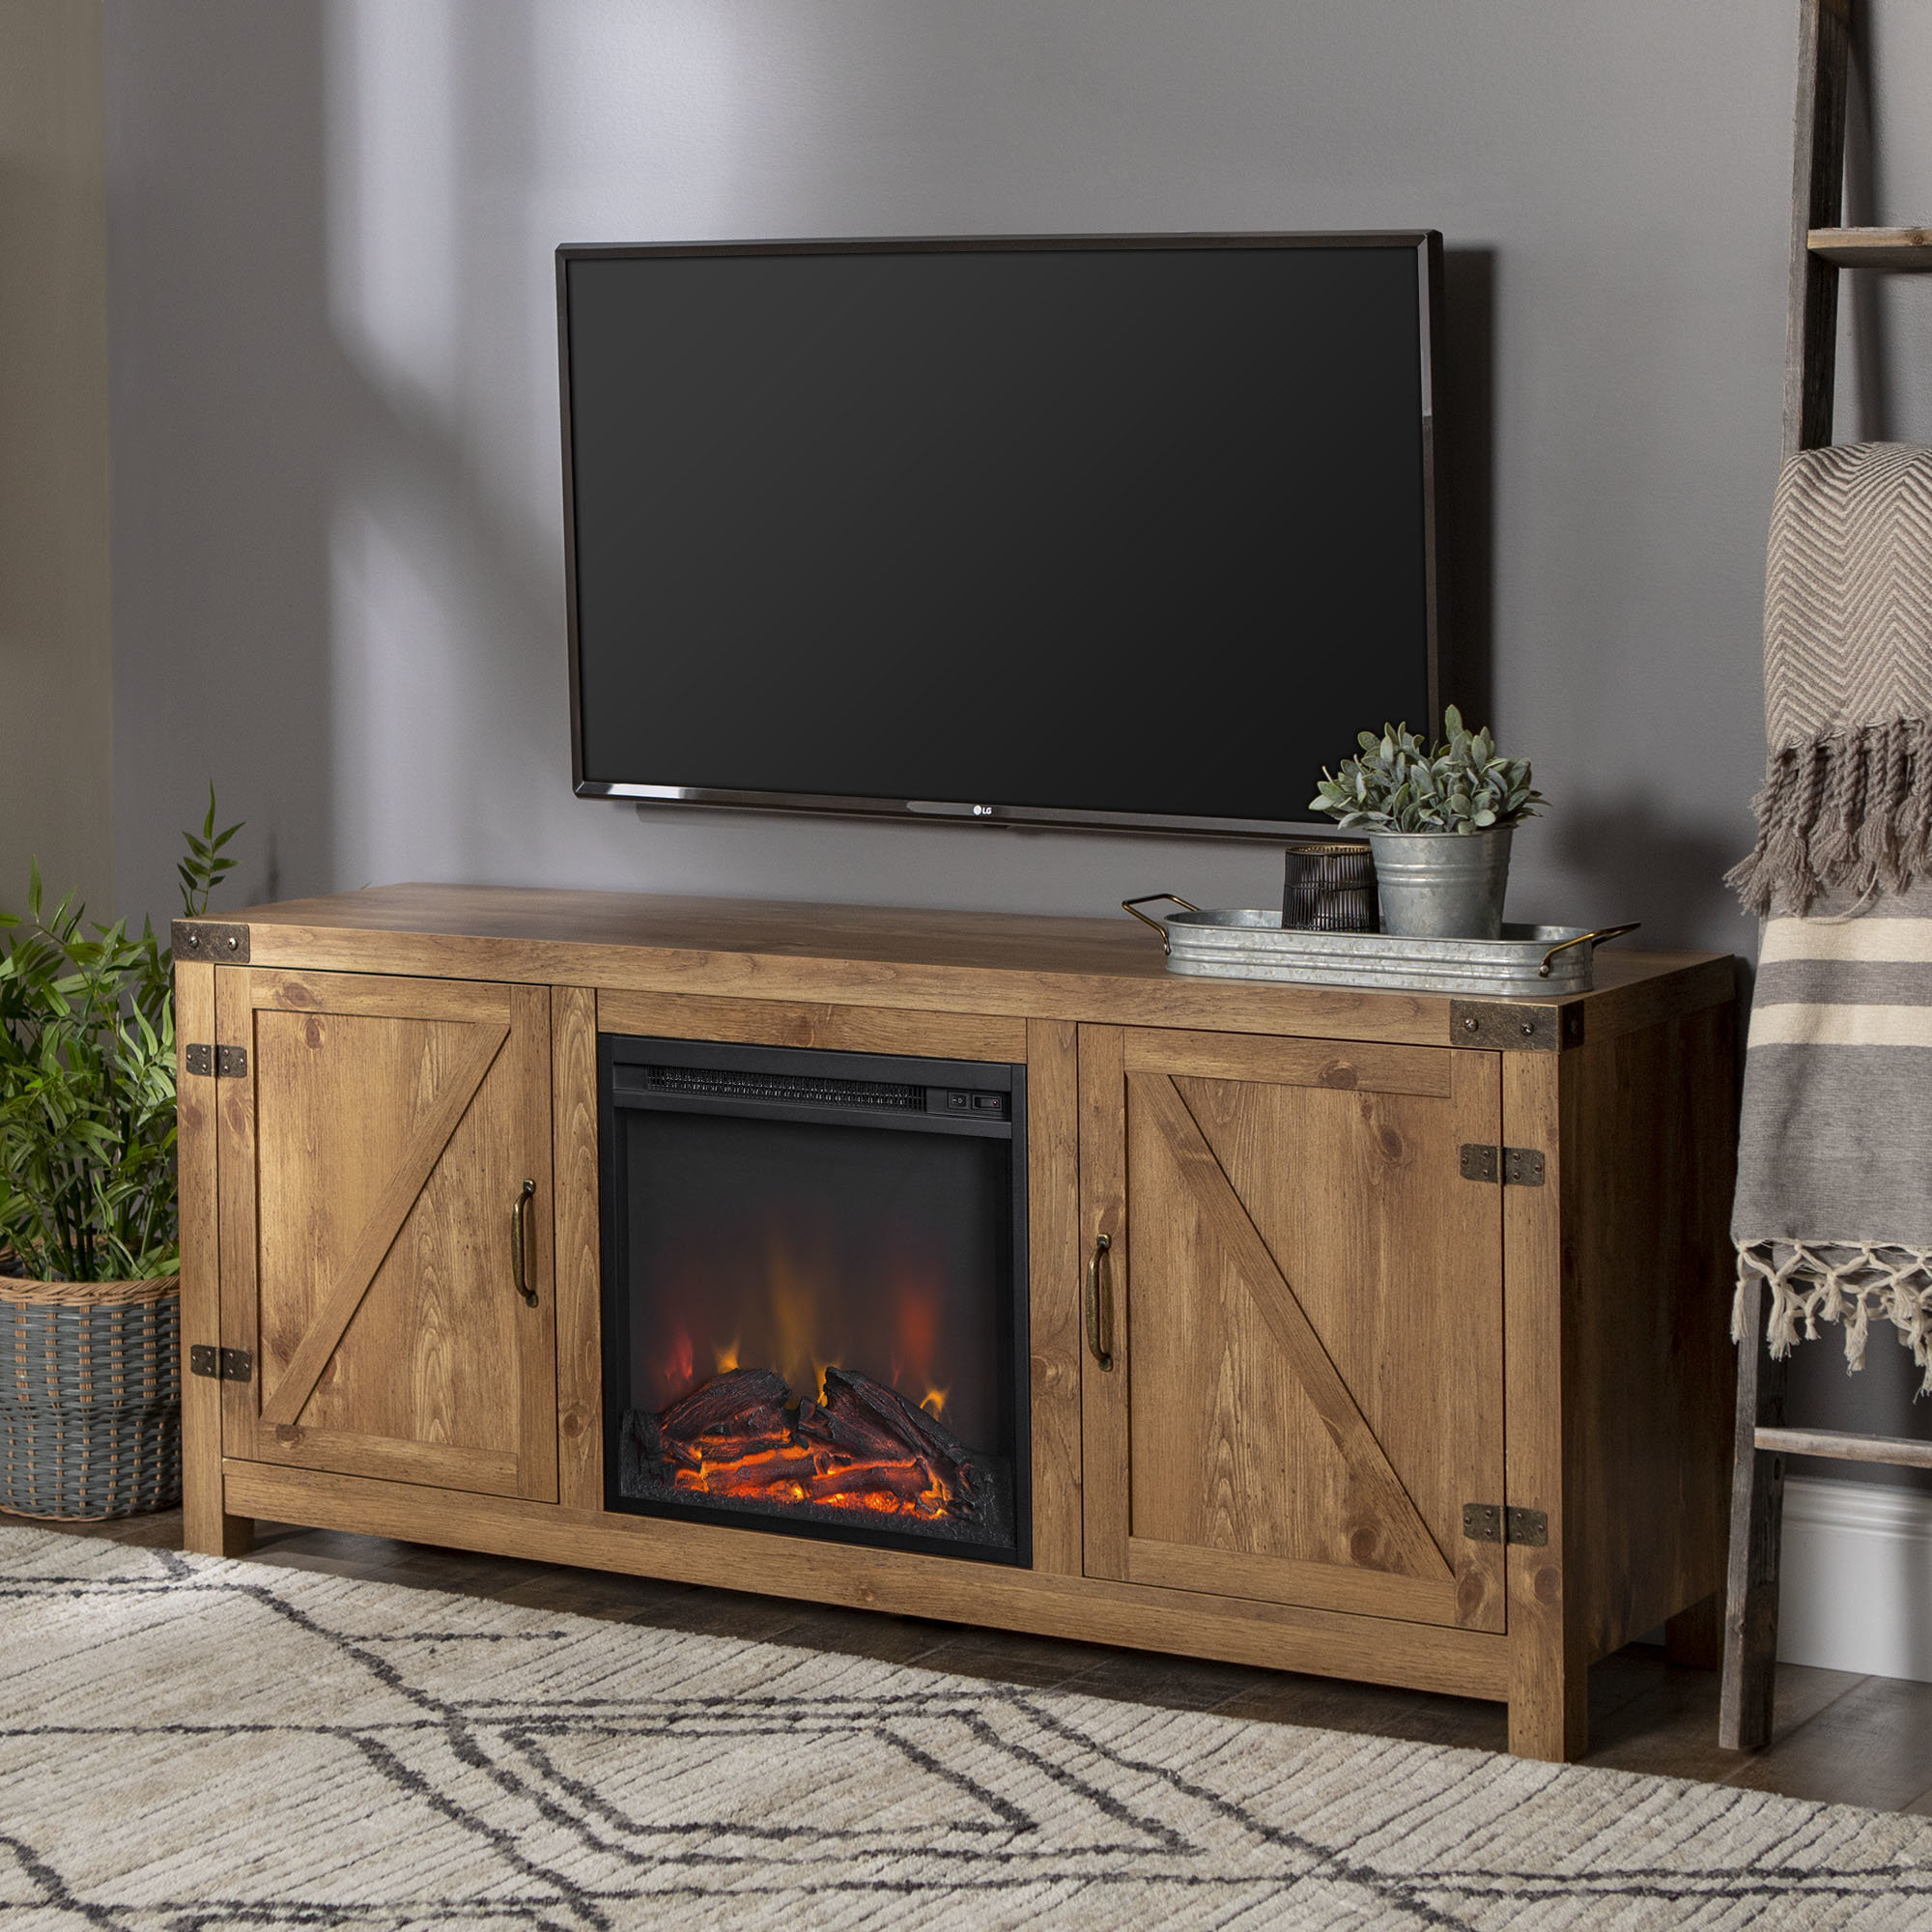 Fireplace Tv Stands & Entertainment Centers You'll Love | Wayfair (View 16 of 30)